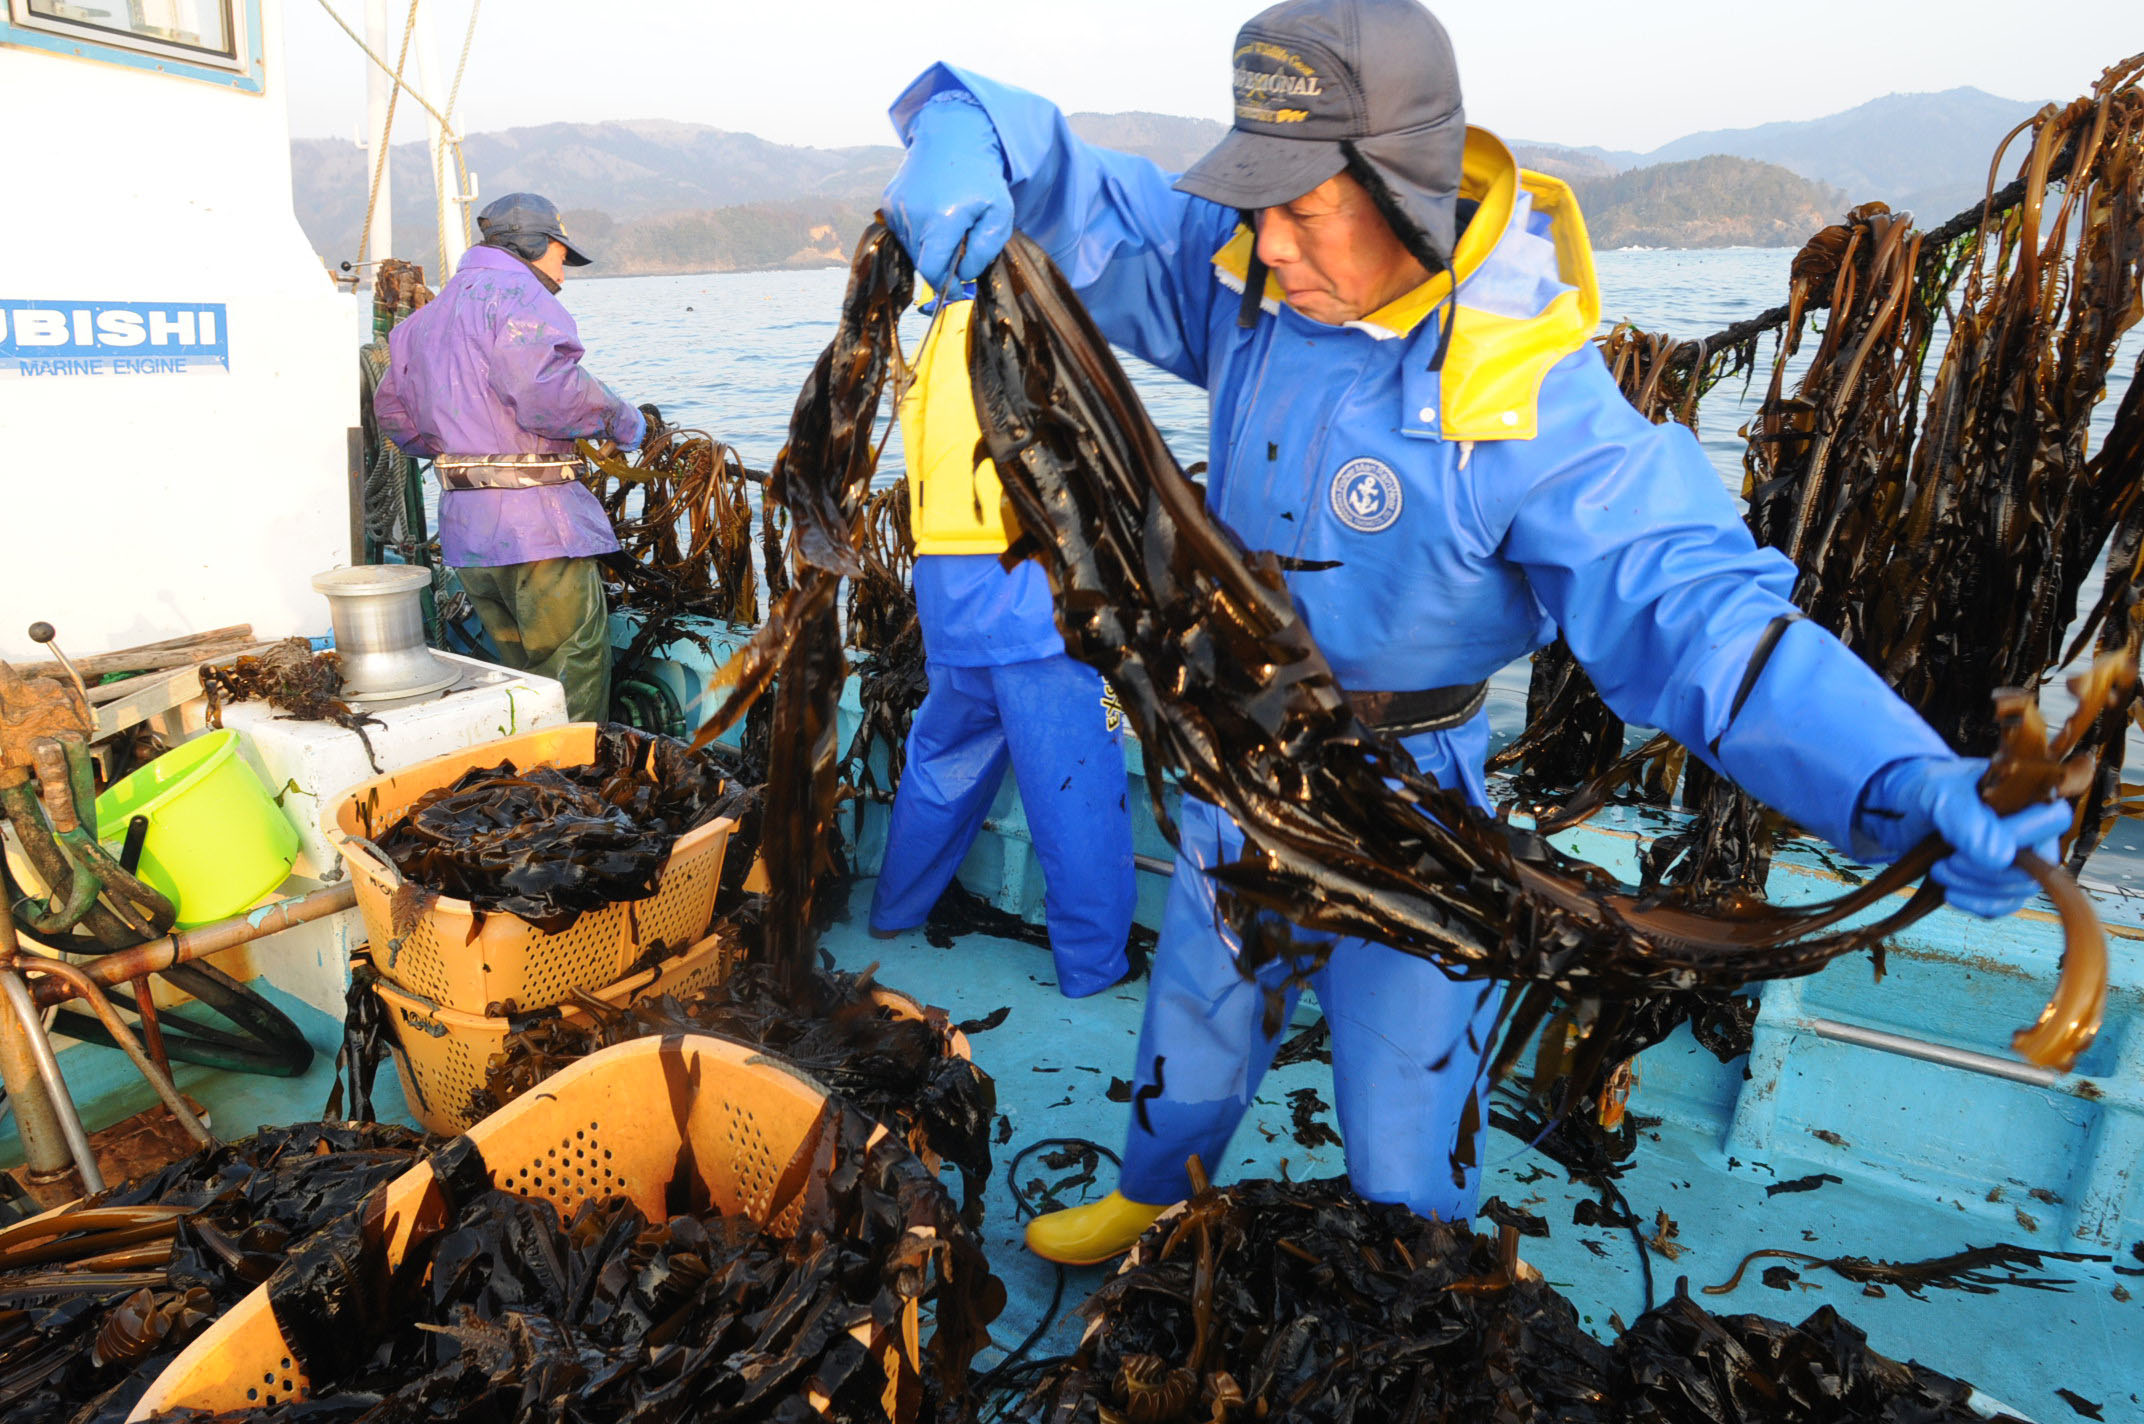 japanese fishing industry essay Japan's manufacturing industry july 2010 ministry of economy trade and industry  although manufacturing industry has led the japanese economy and has been responsible for 90% of japan's.